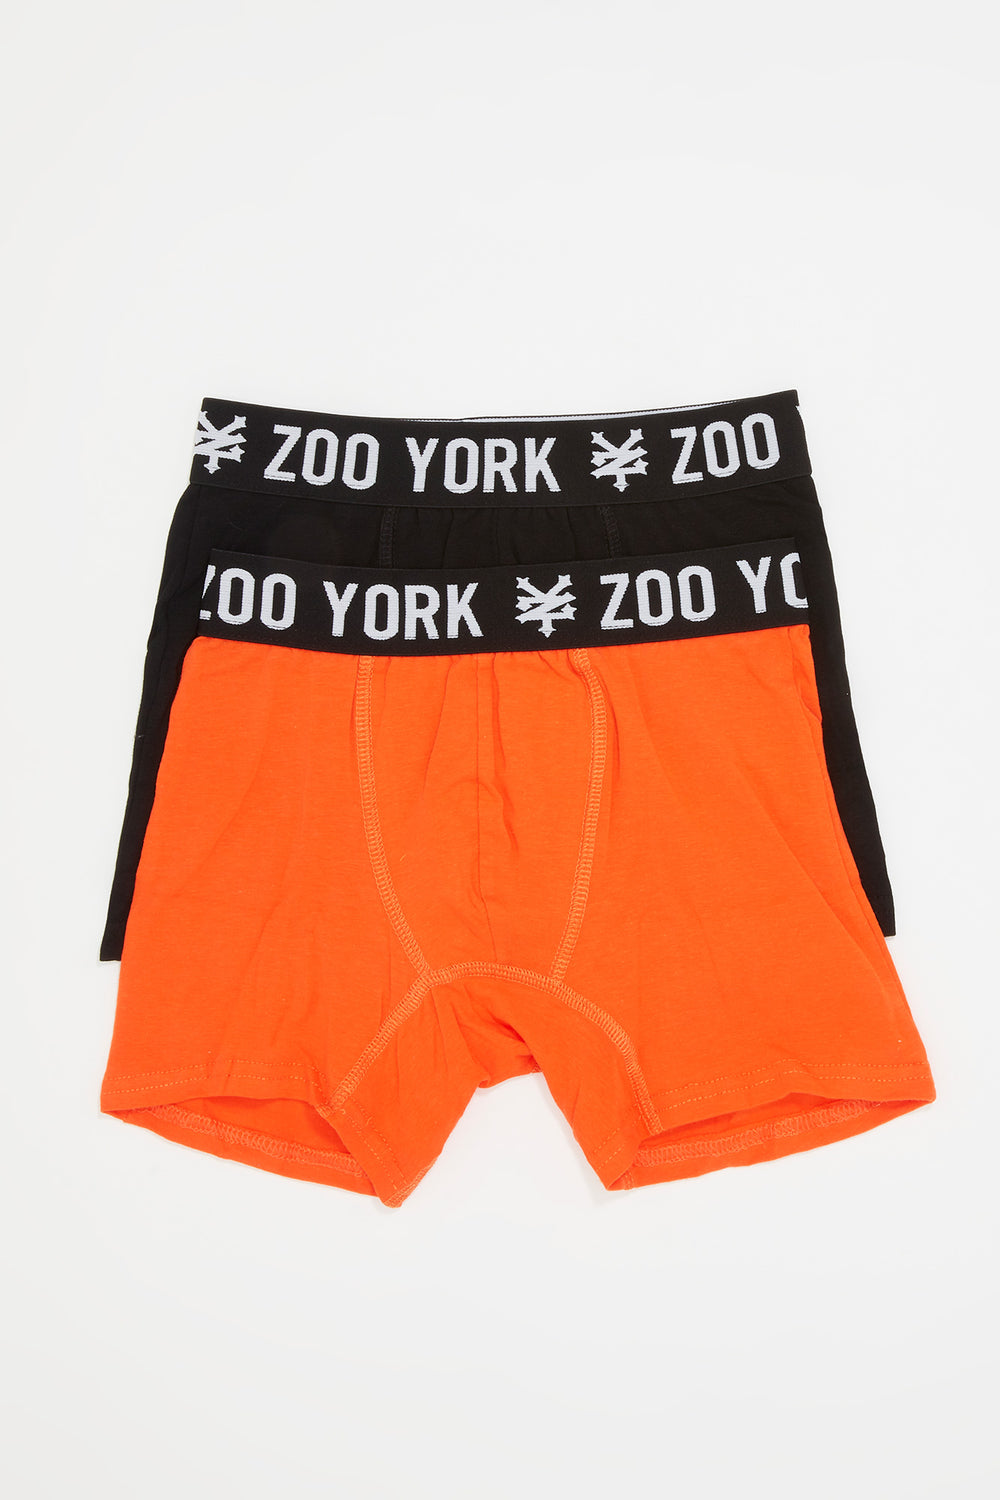 Zoo York Boys 2-Pack Cotton Boxer Briefs Orange